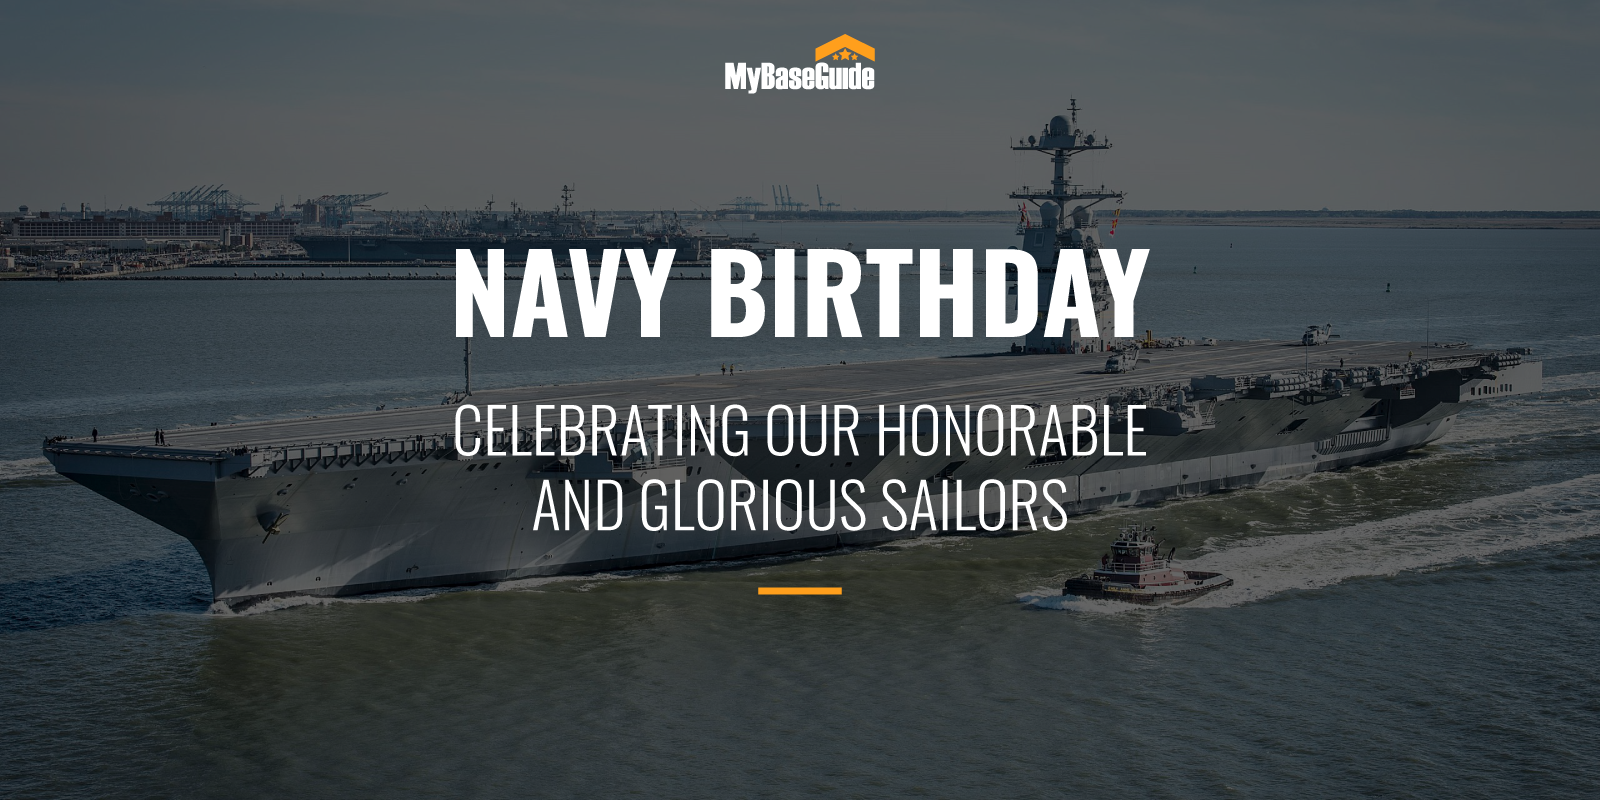 Navy Birthday: Celebrating Our Honorable and Glorious Sailors